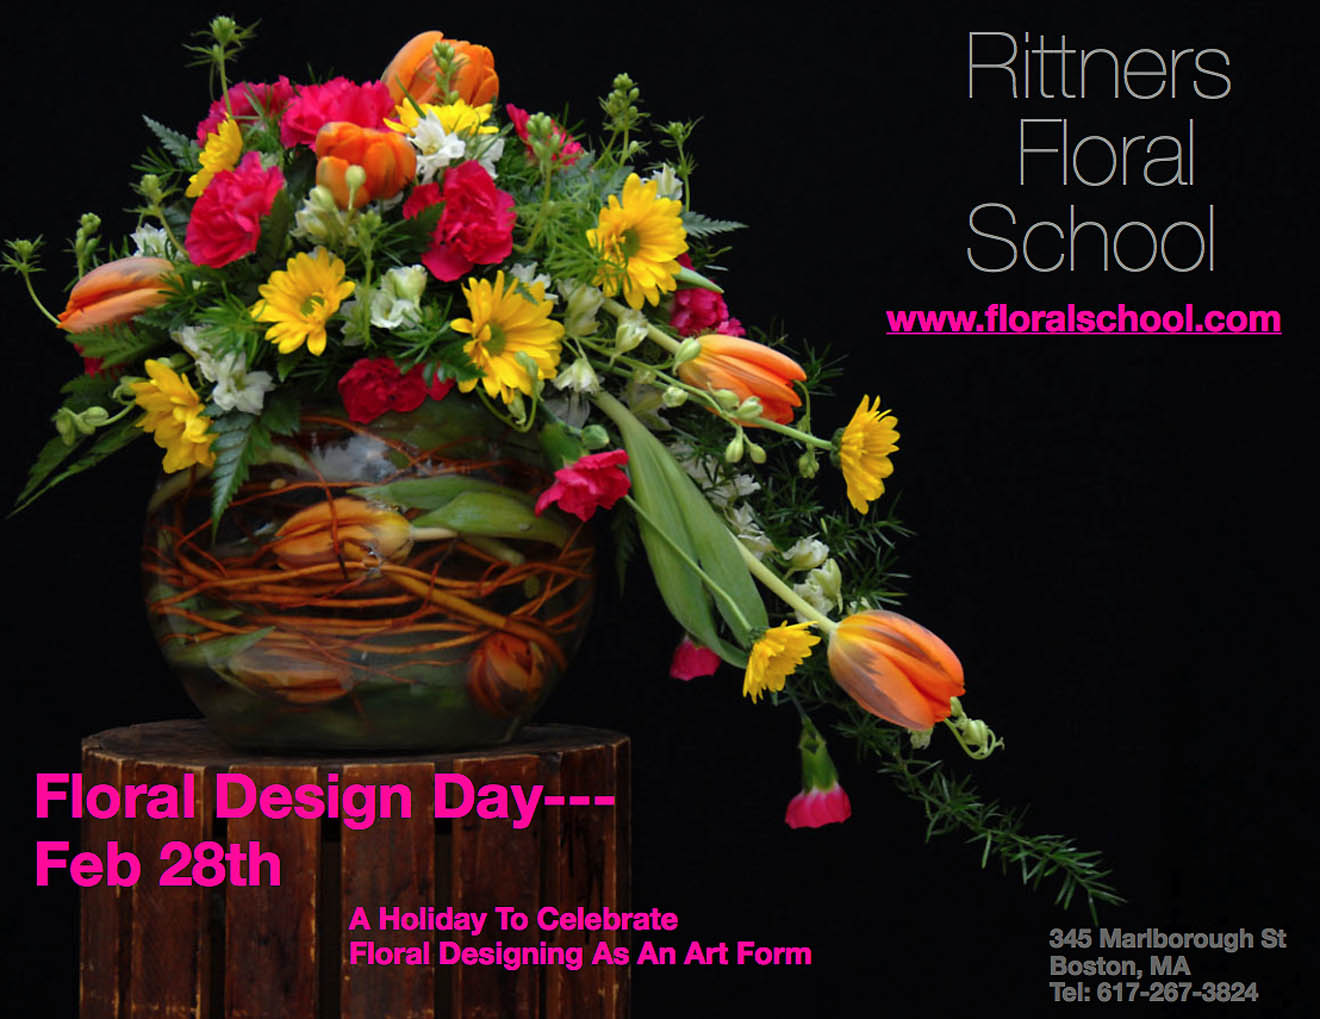 Floralschool Com Rittners School Of Floral Design The Floral